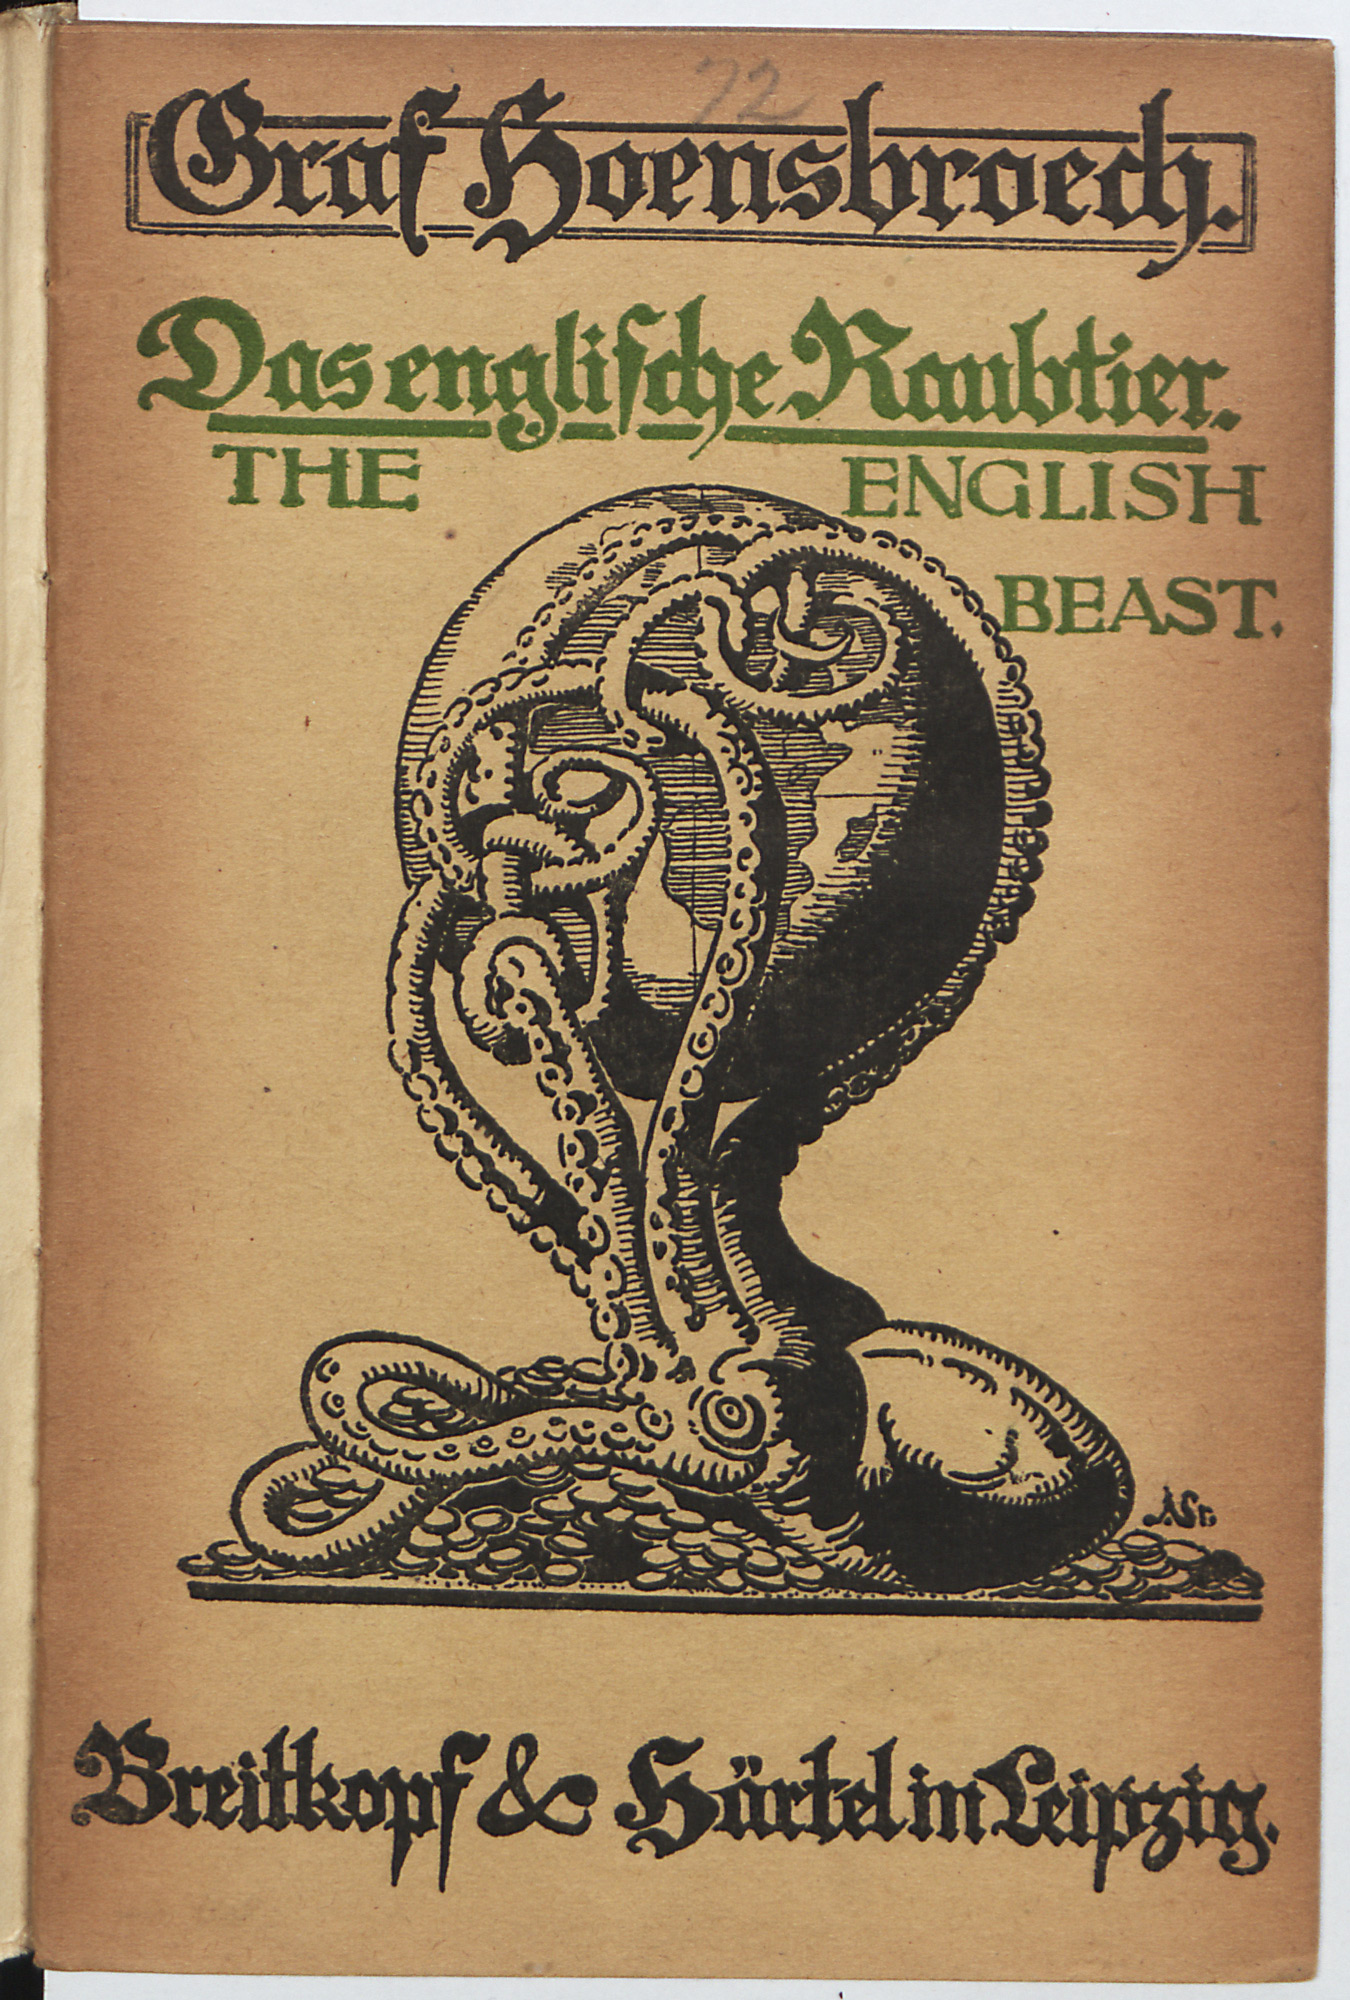 German propaganda pamphlet attacking 'the English beast' by depicting England as an octopus controlling the globe with its tentacles.